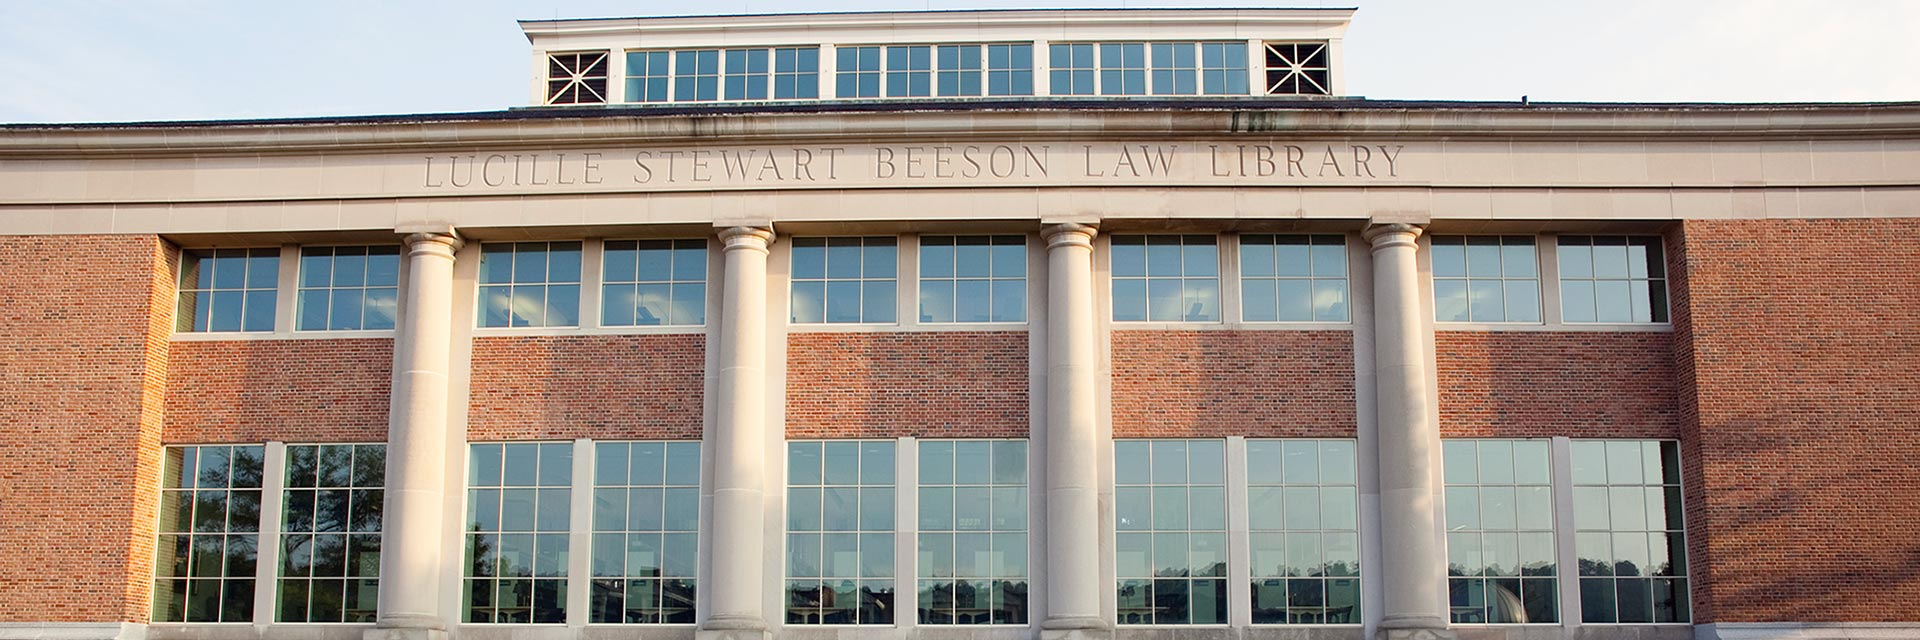 law library header